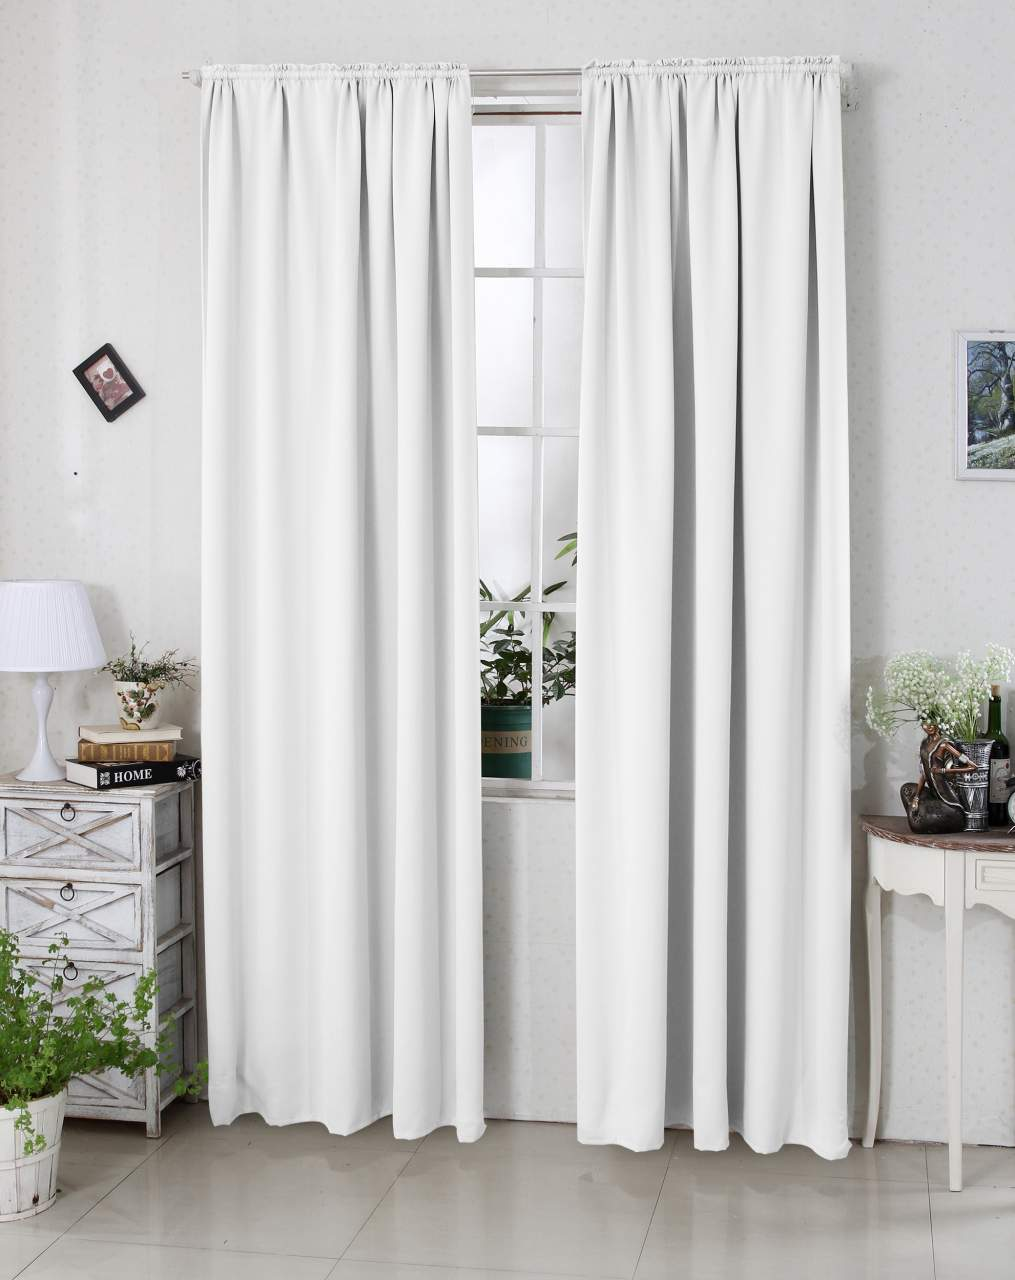 curtains pencil pleat blackout curtains thermal insulated tape top curtain panels for bedroom white 135x175 cm